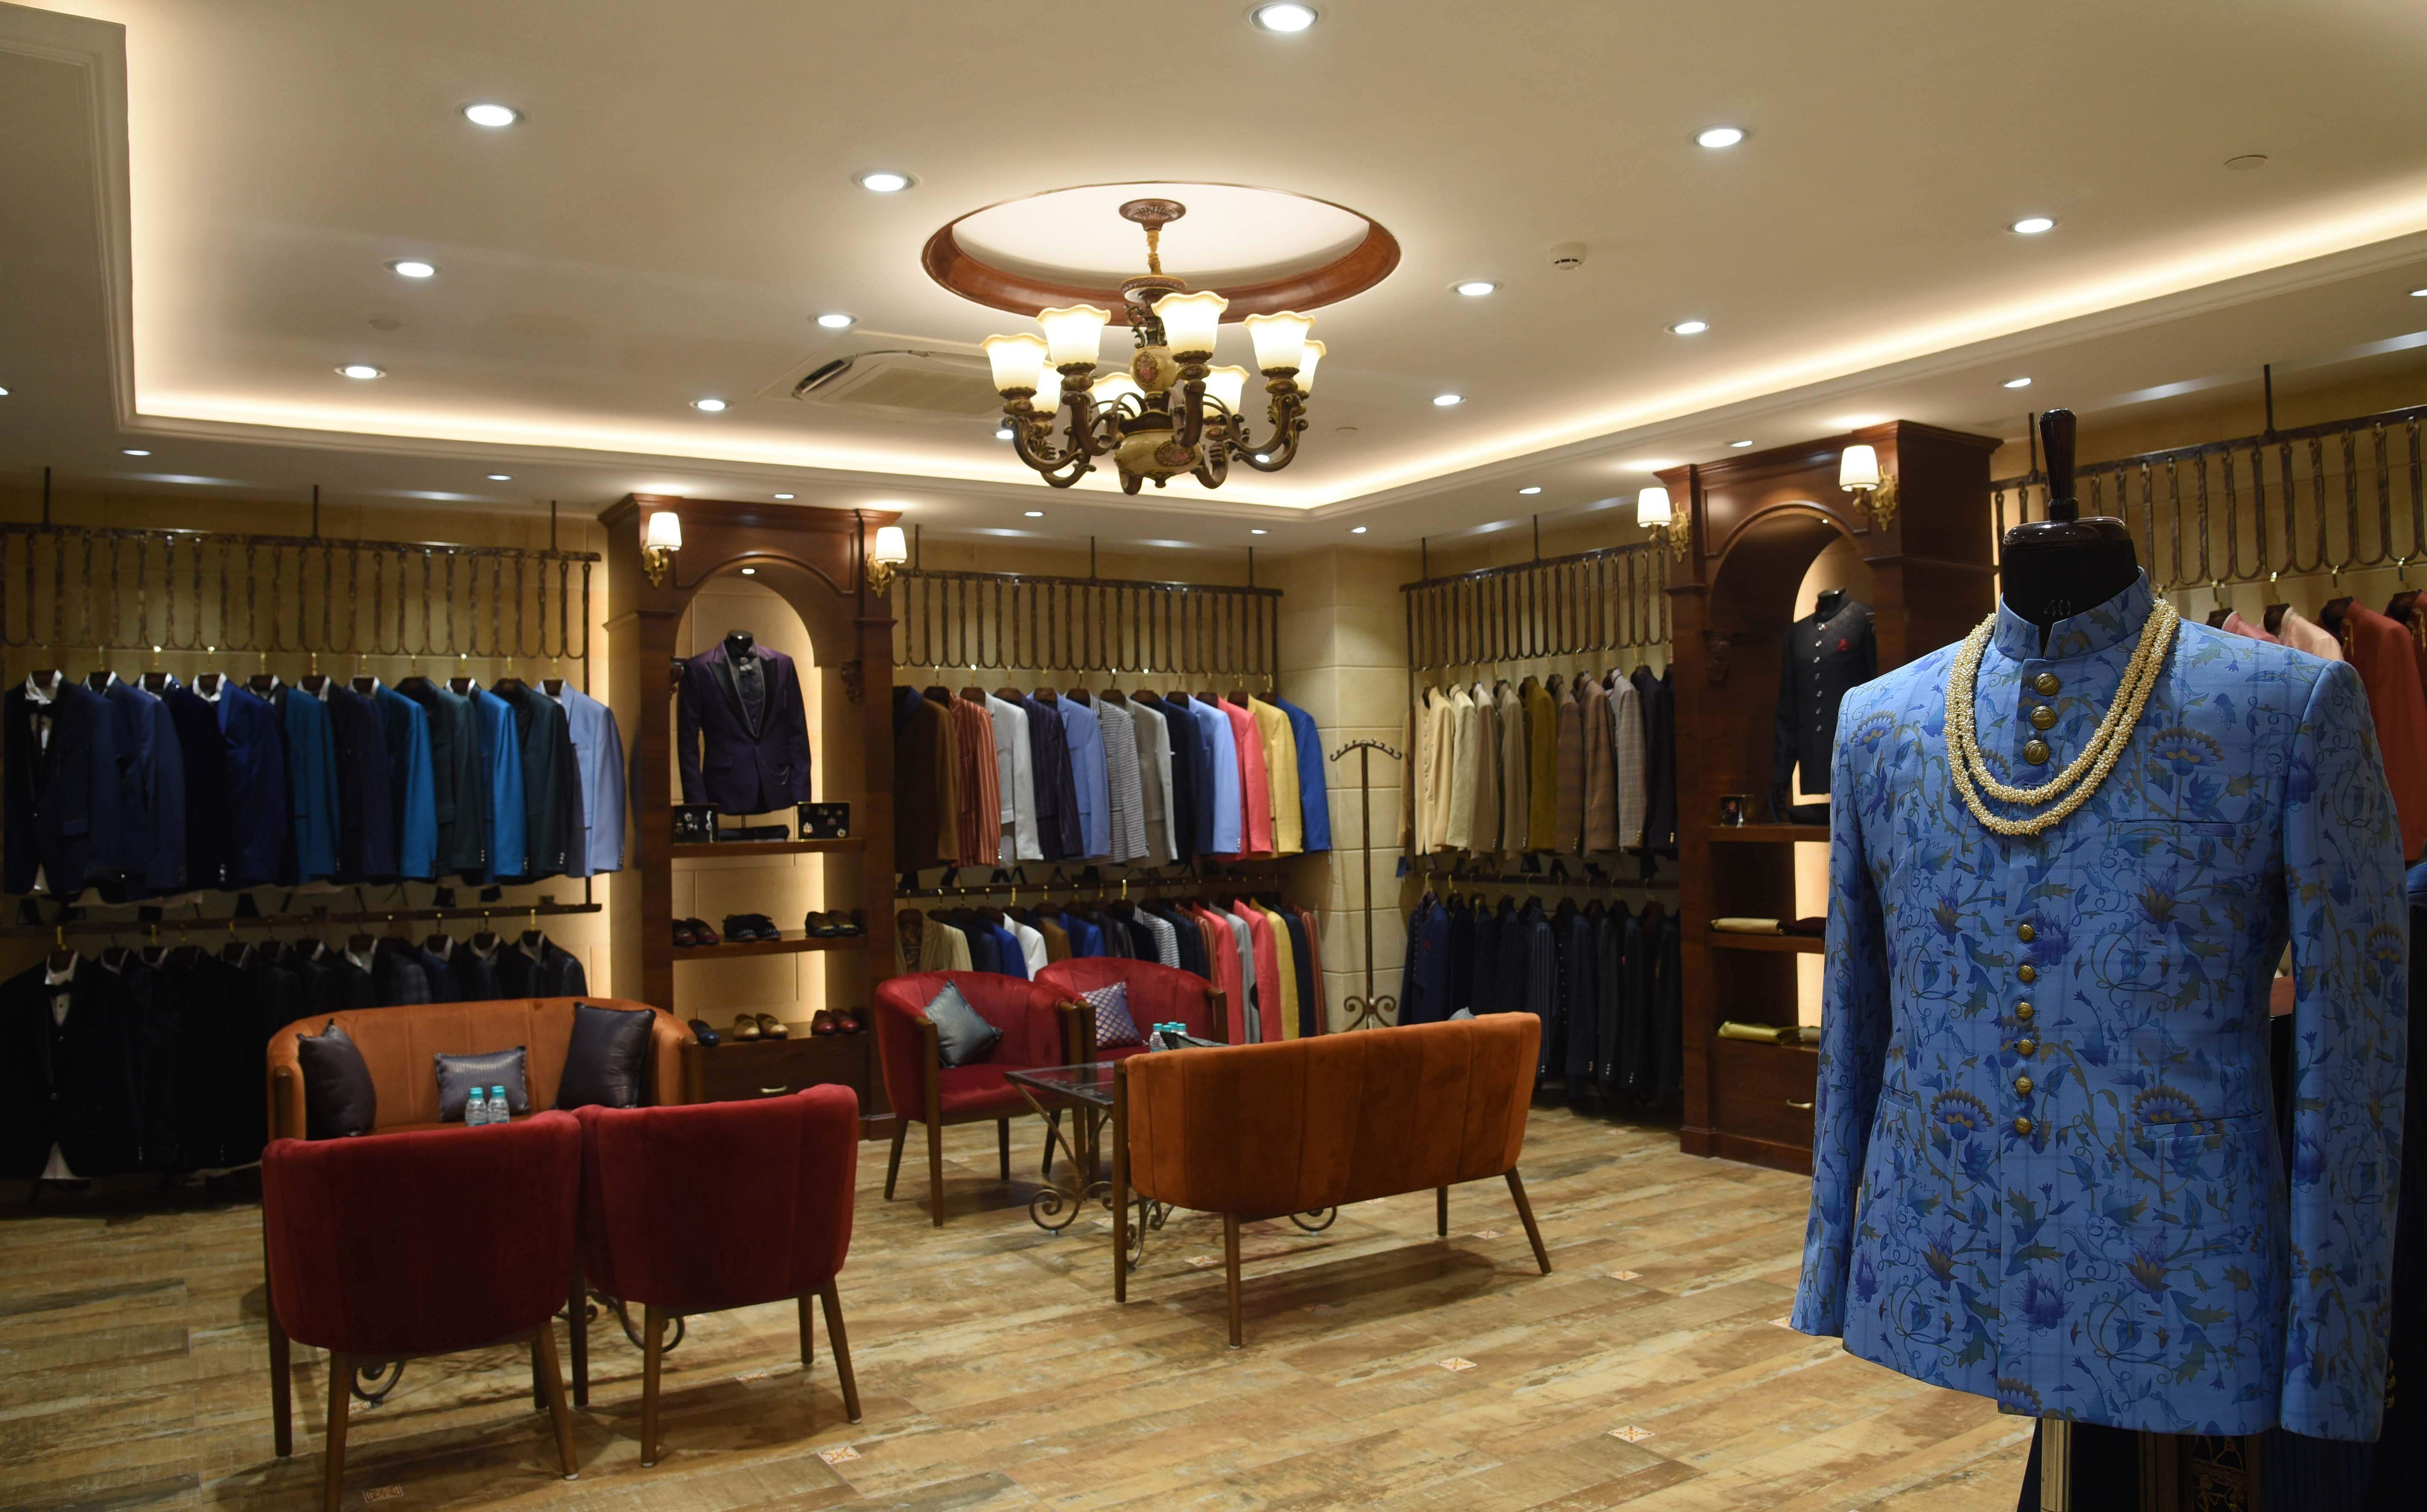 Check Out Exclusive Menswear At The Newly Opened Kora By Nilesh And Mitesh In Hydrabad